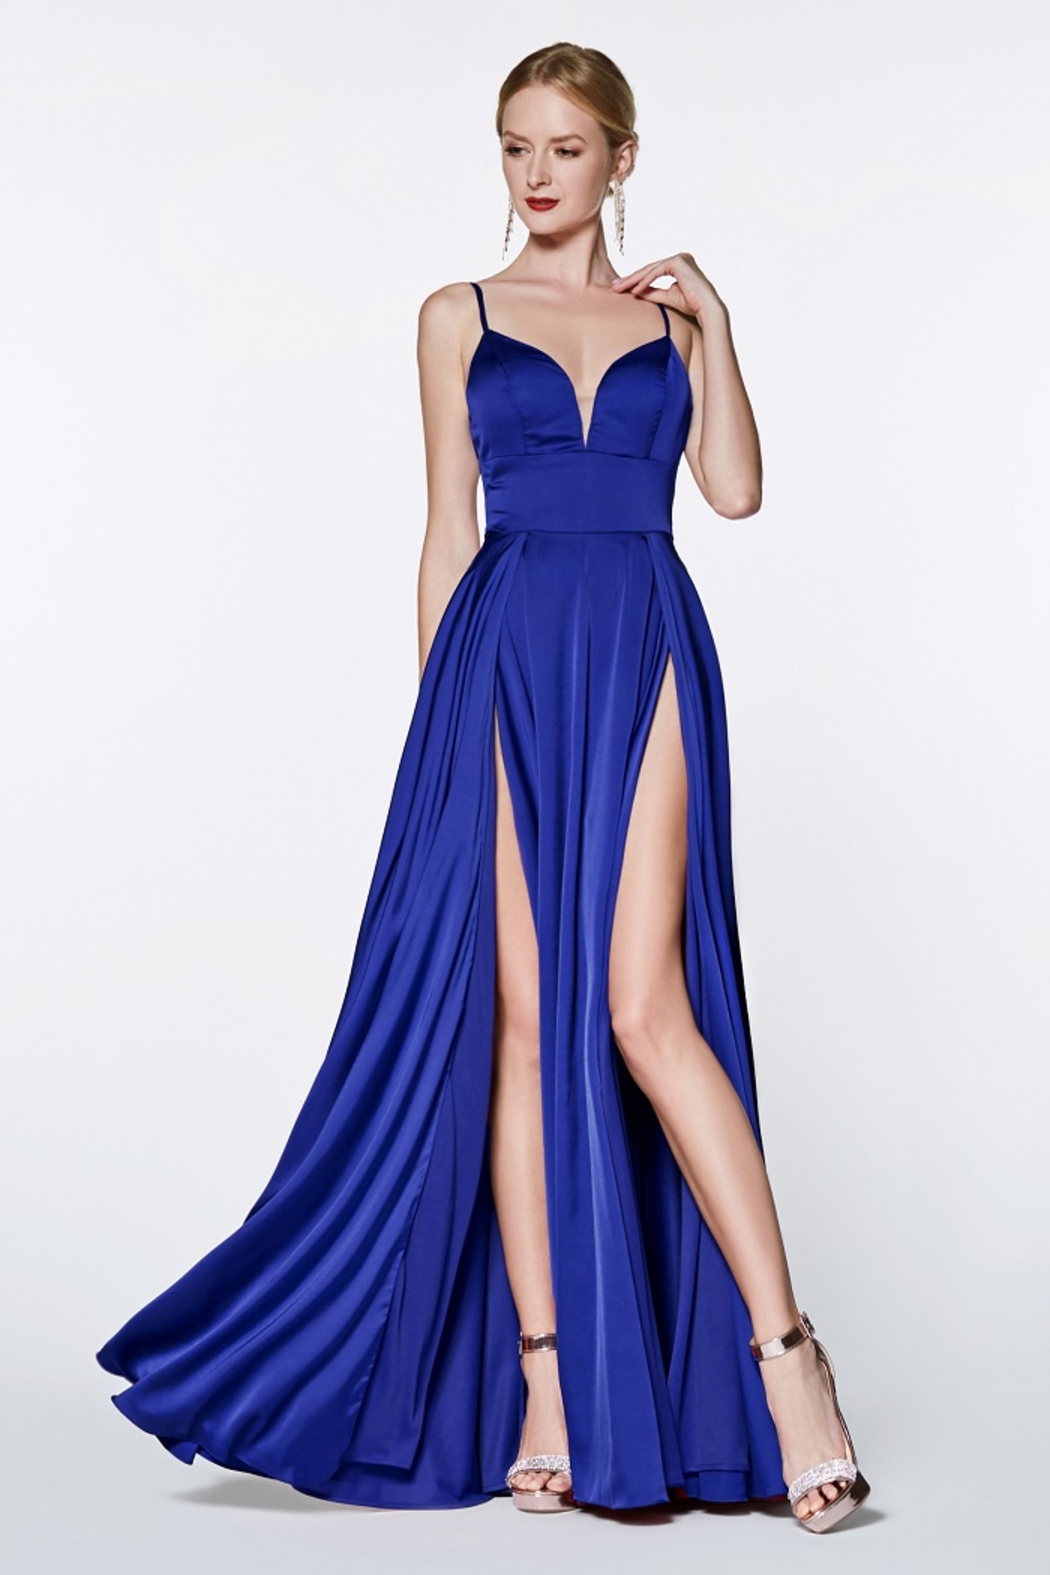 Cinderella Divine Royal Blue Satin Long Formal Dress - Main Image